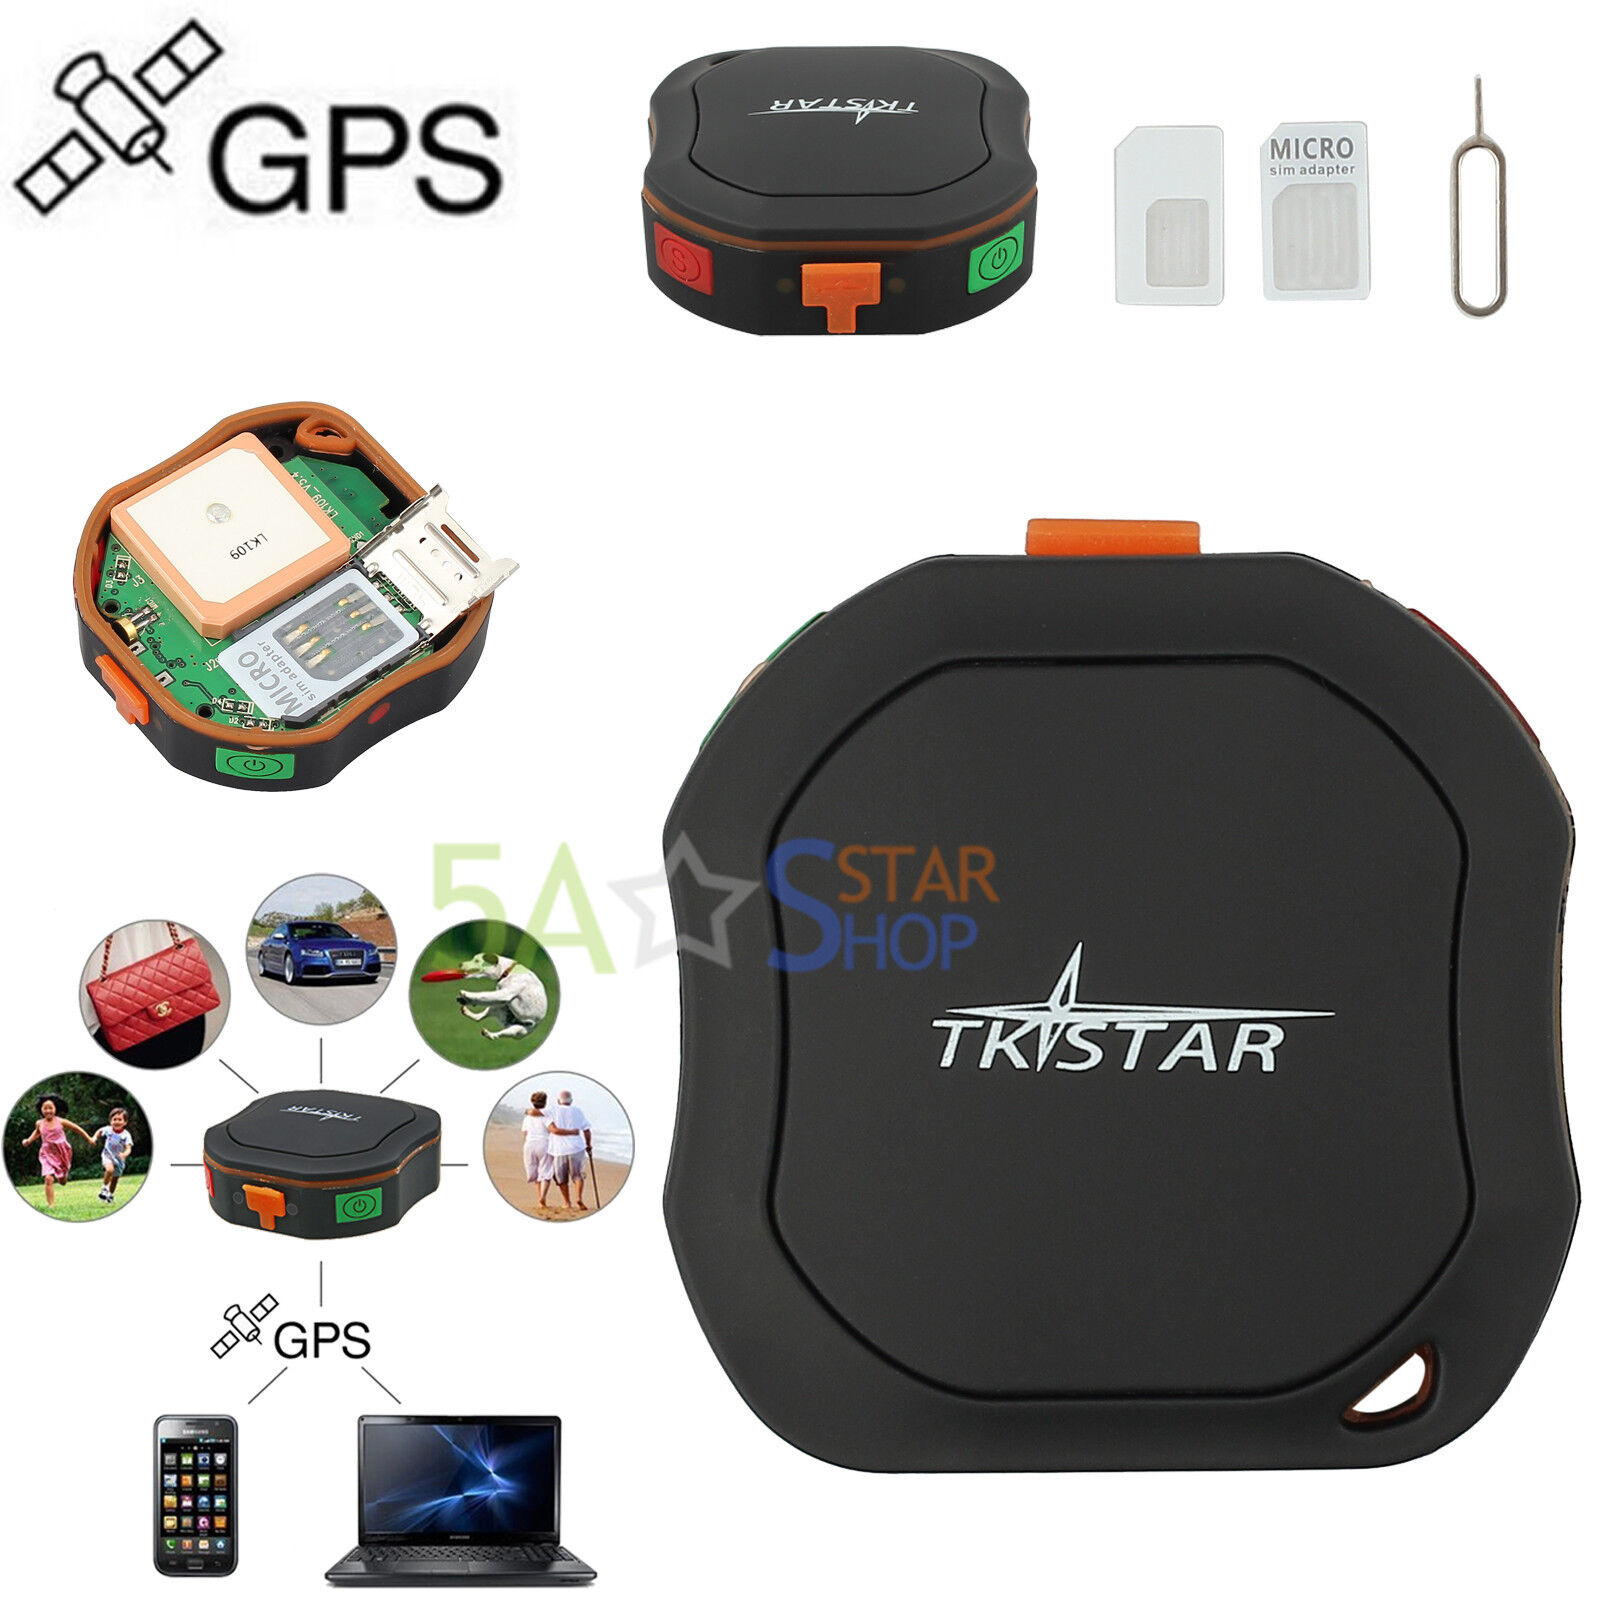 gsm gps tracker peilsender sms sender gprs a gps sos alarm. Black Bedroom Furniture Sets. Home Design Ideas